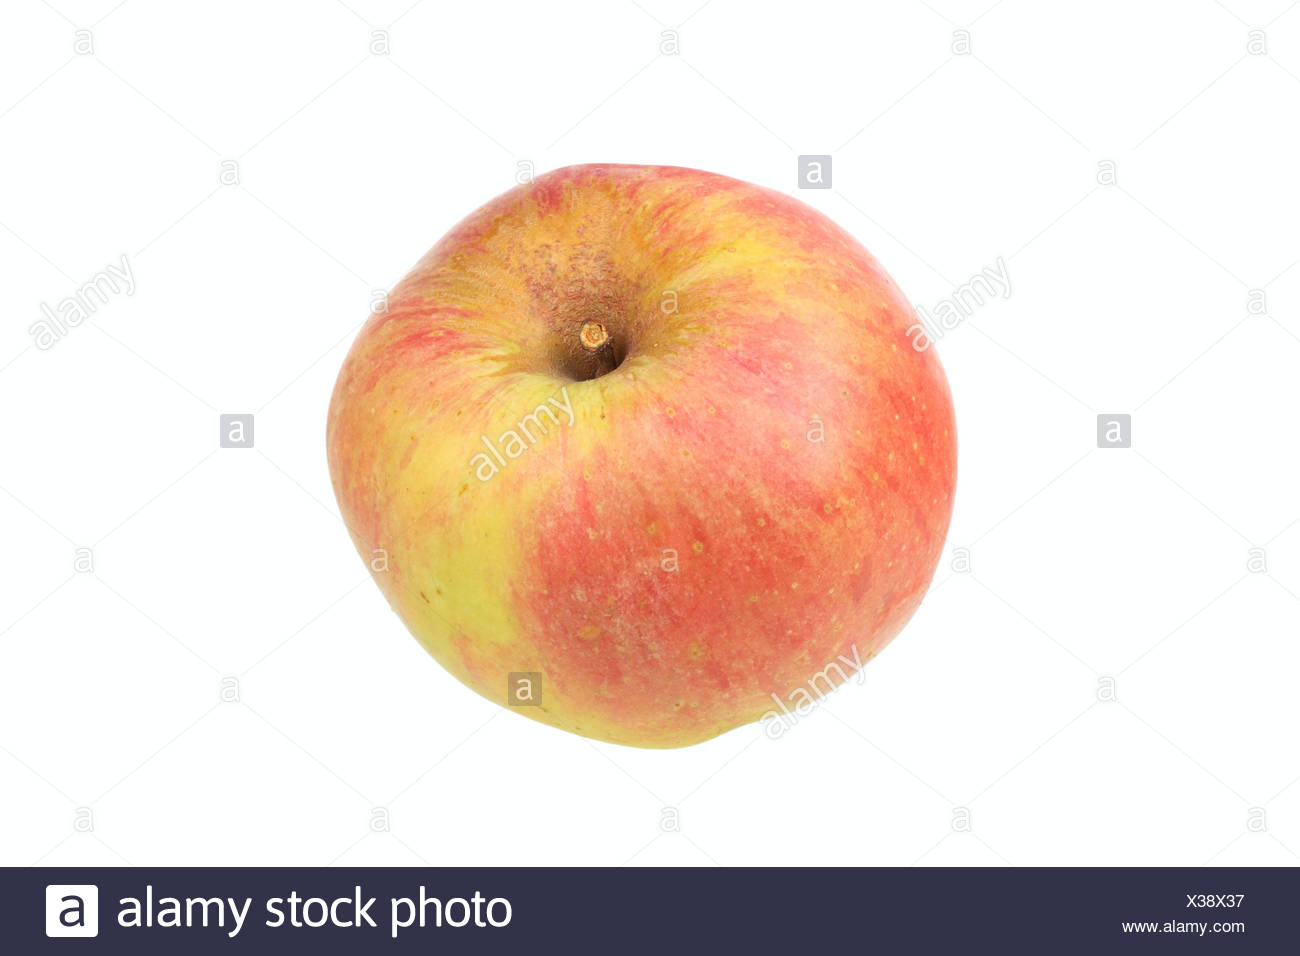 Apple, Anhalter variety, traditional sort for producing cider - Stock Image